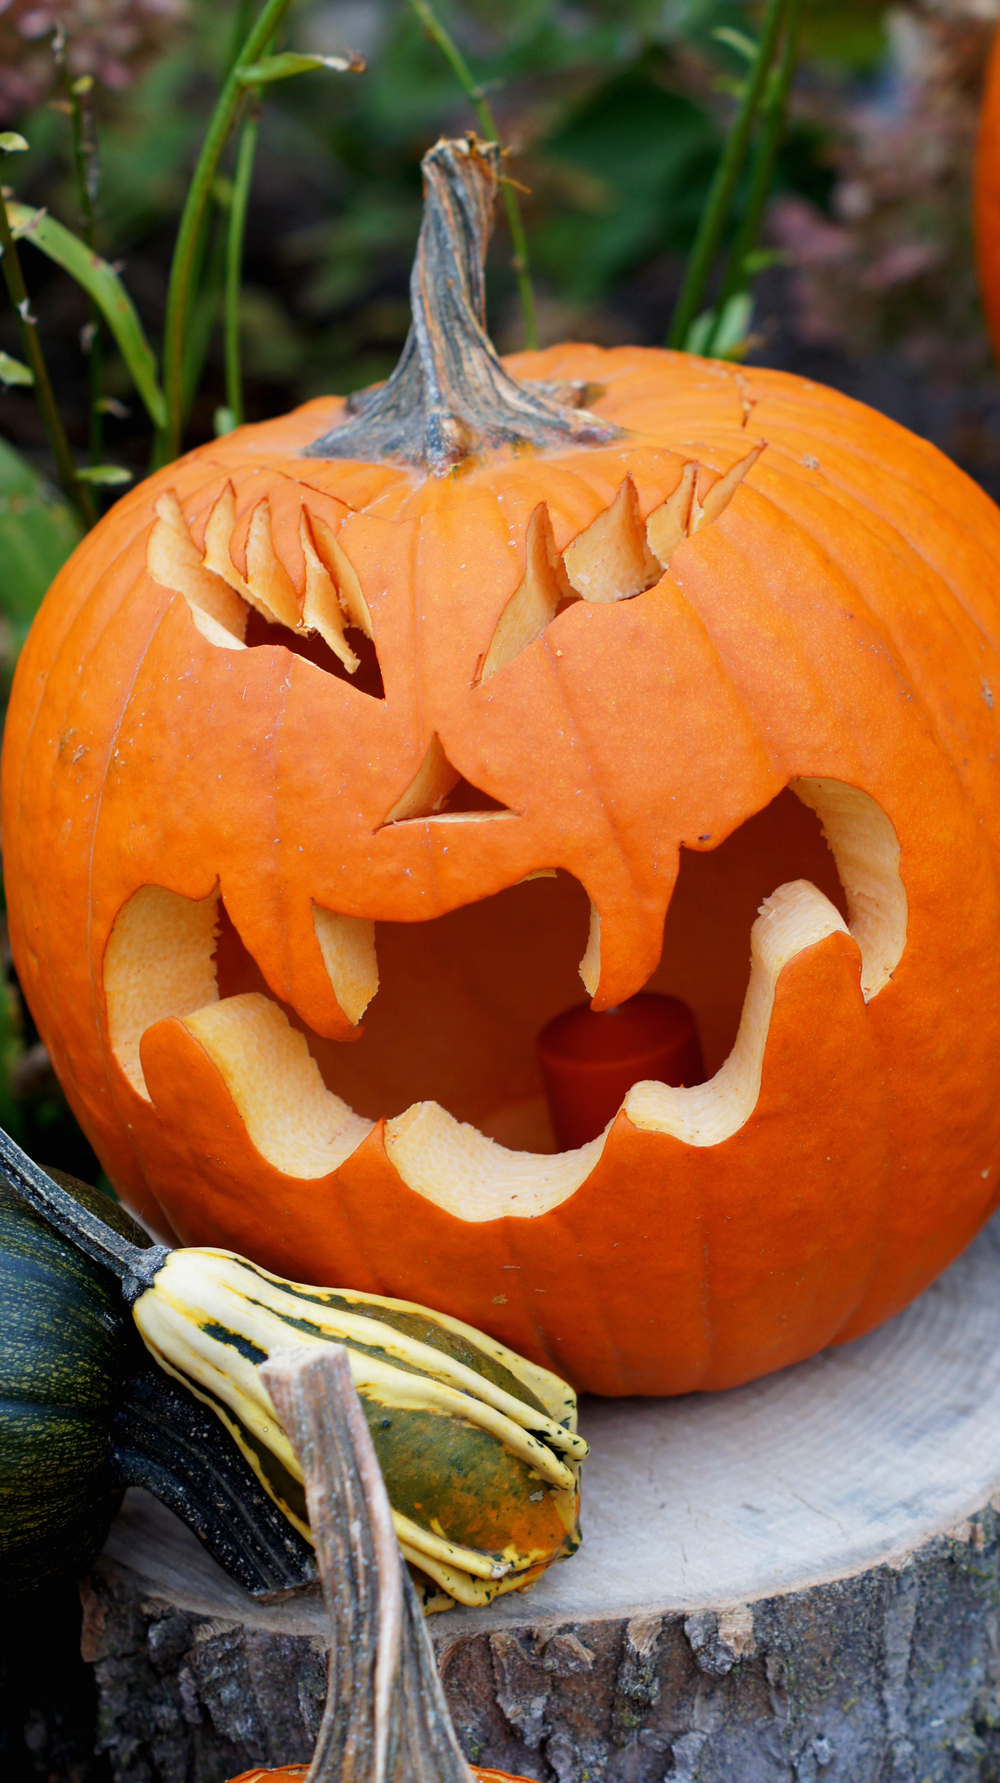 Carved Pumpkin 1.jpg